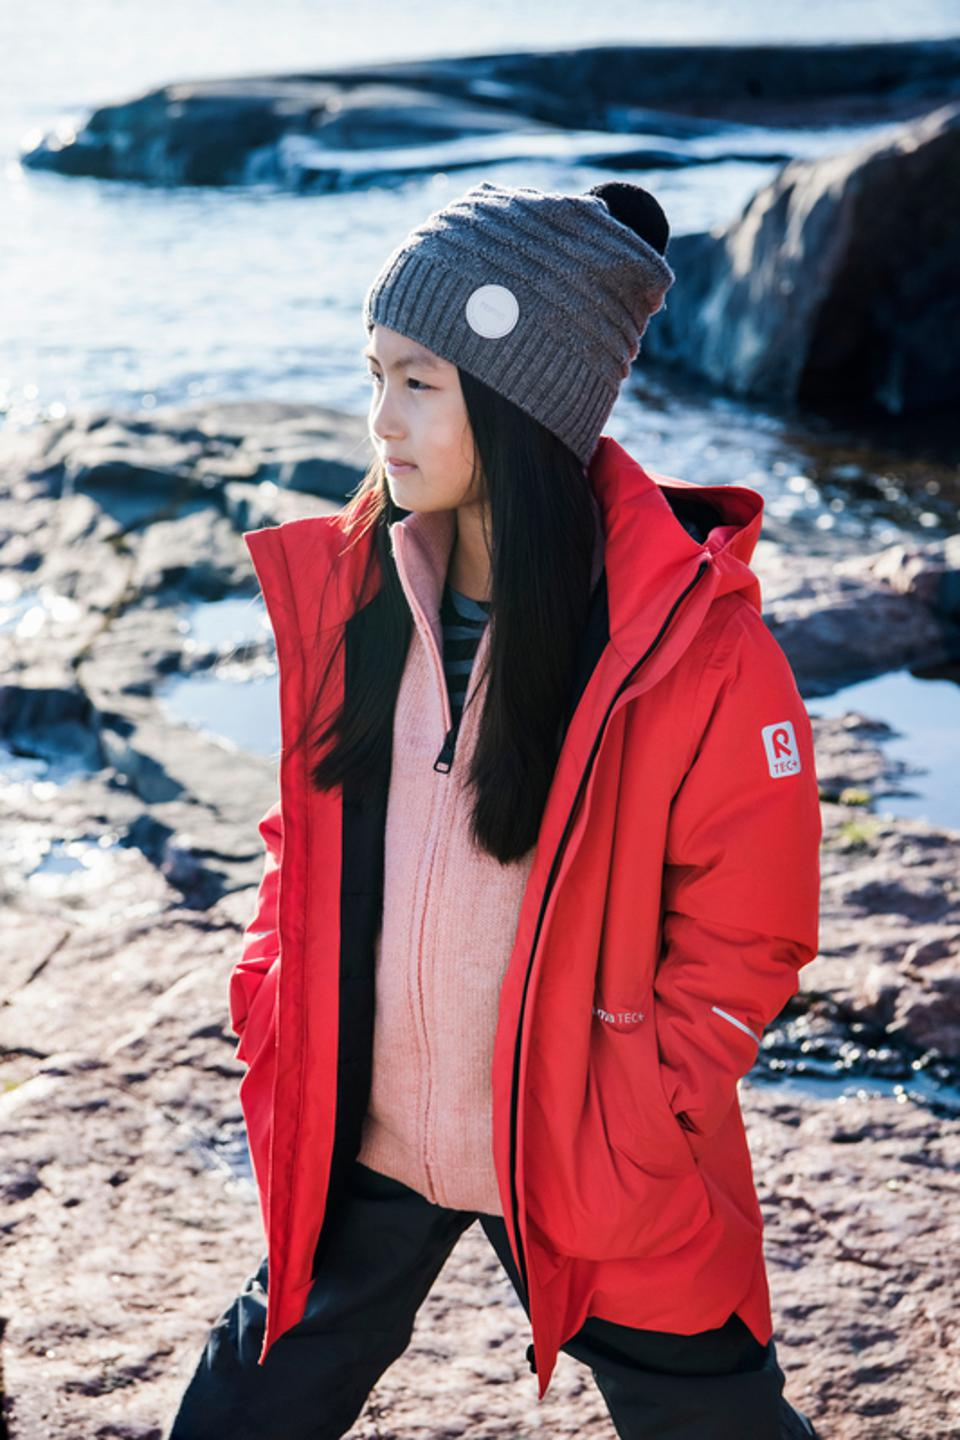 A young girl in the Reima Kulkija winter jacket, which is designed to be 100% recycled.